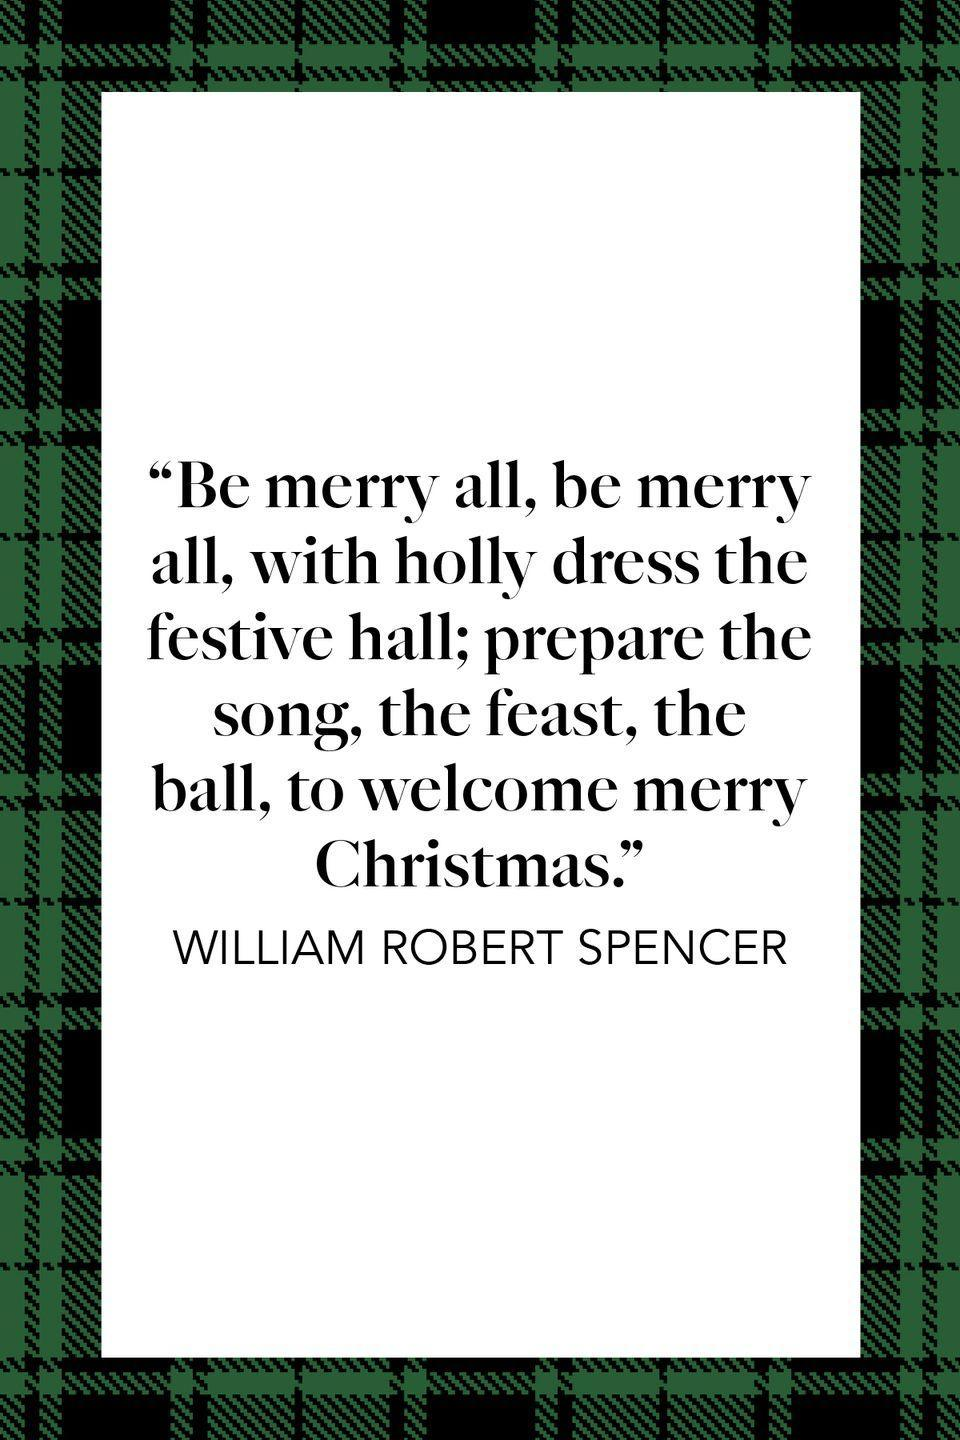 "<p>""Be merry all, be merry all, / With holly dress the festive hall; / Prepare the song, the feast, the ball, / To welcome merry Christmas,"" English poet William Robert Spencer wrote in a <a href=""https://books.google.com/books/about/Poems.html?id=TnasvgEACAAJ&source=kp_book_description"" rel=""nofollow noopener"" target=""_blank"" data-ylk=""slk:collection of his works"" class=""link rapid-noclick-resp"">collection of his works</a>.</p>"